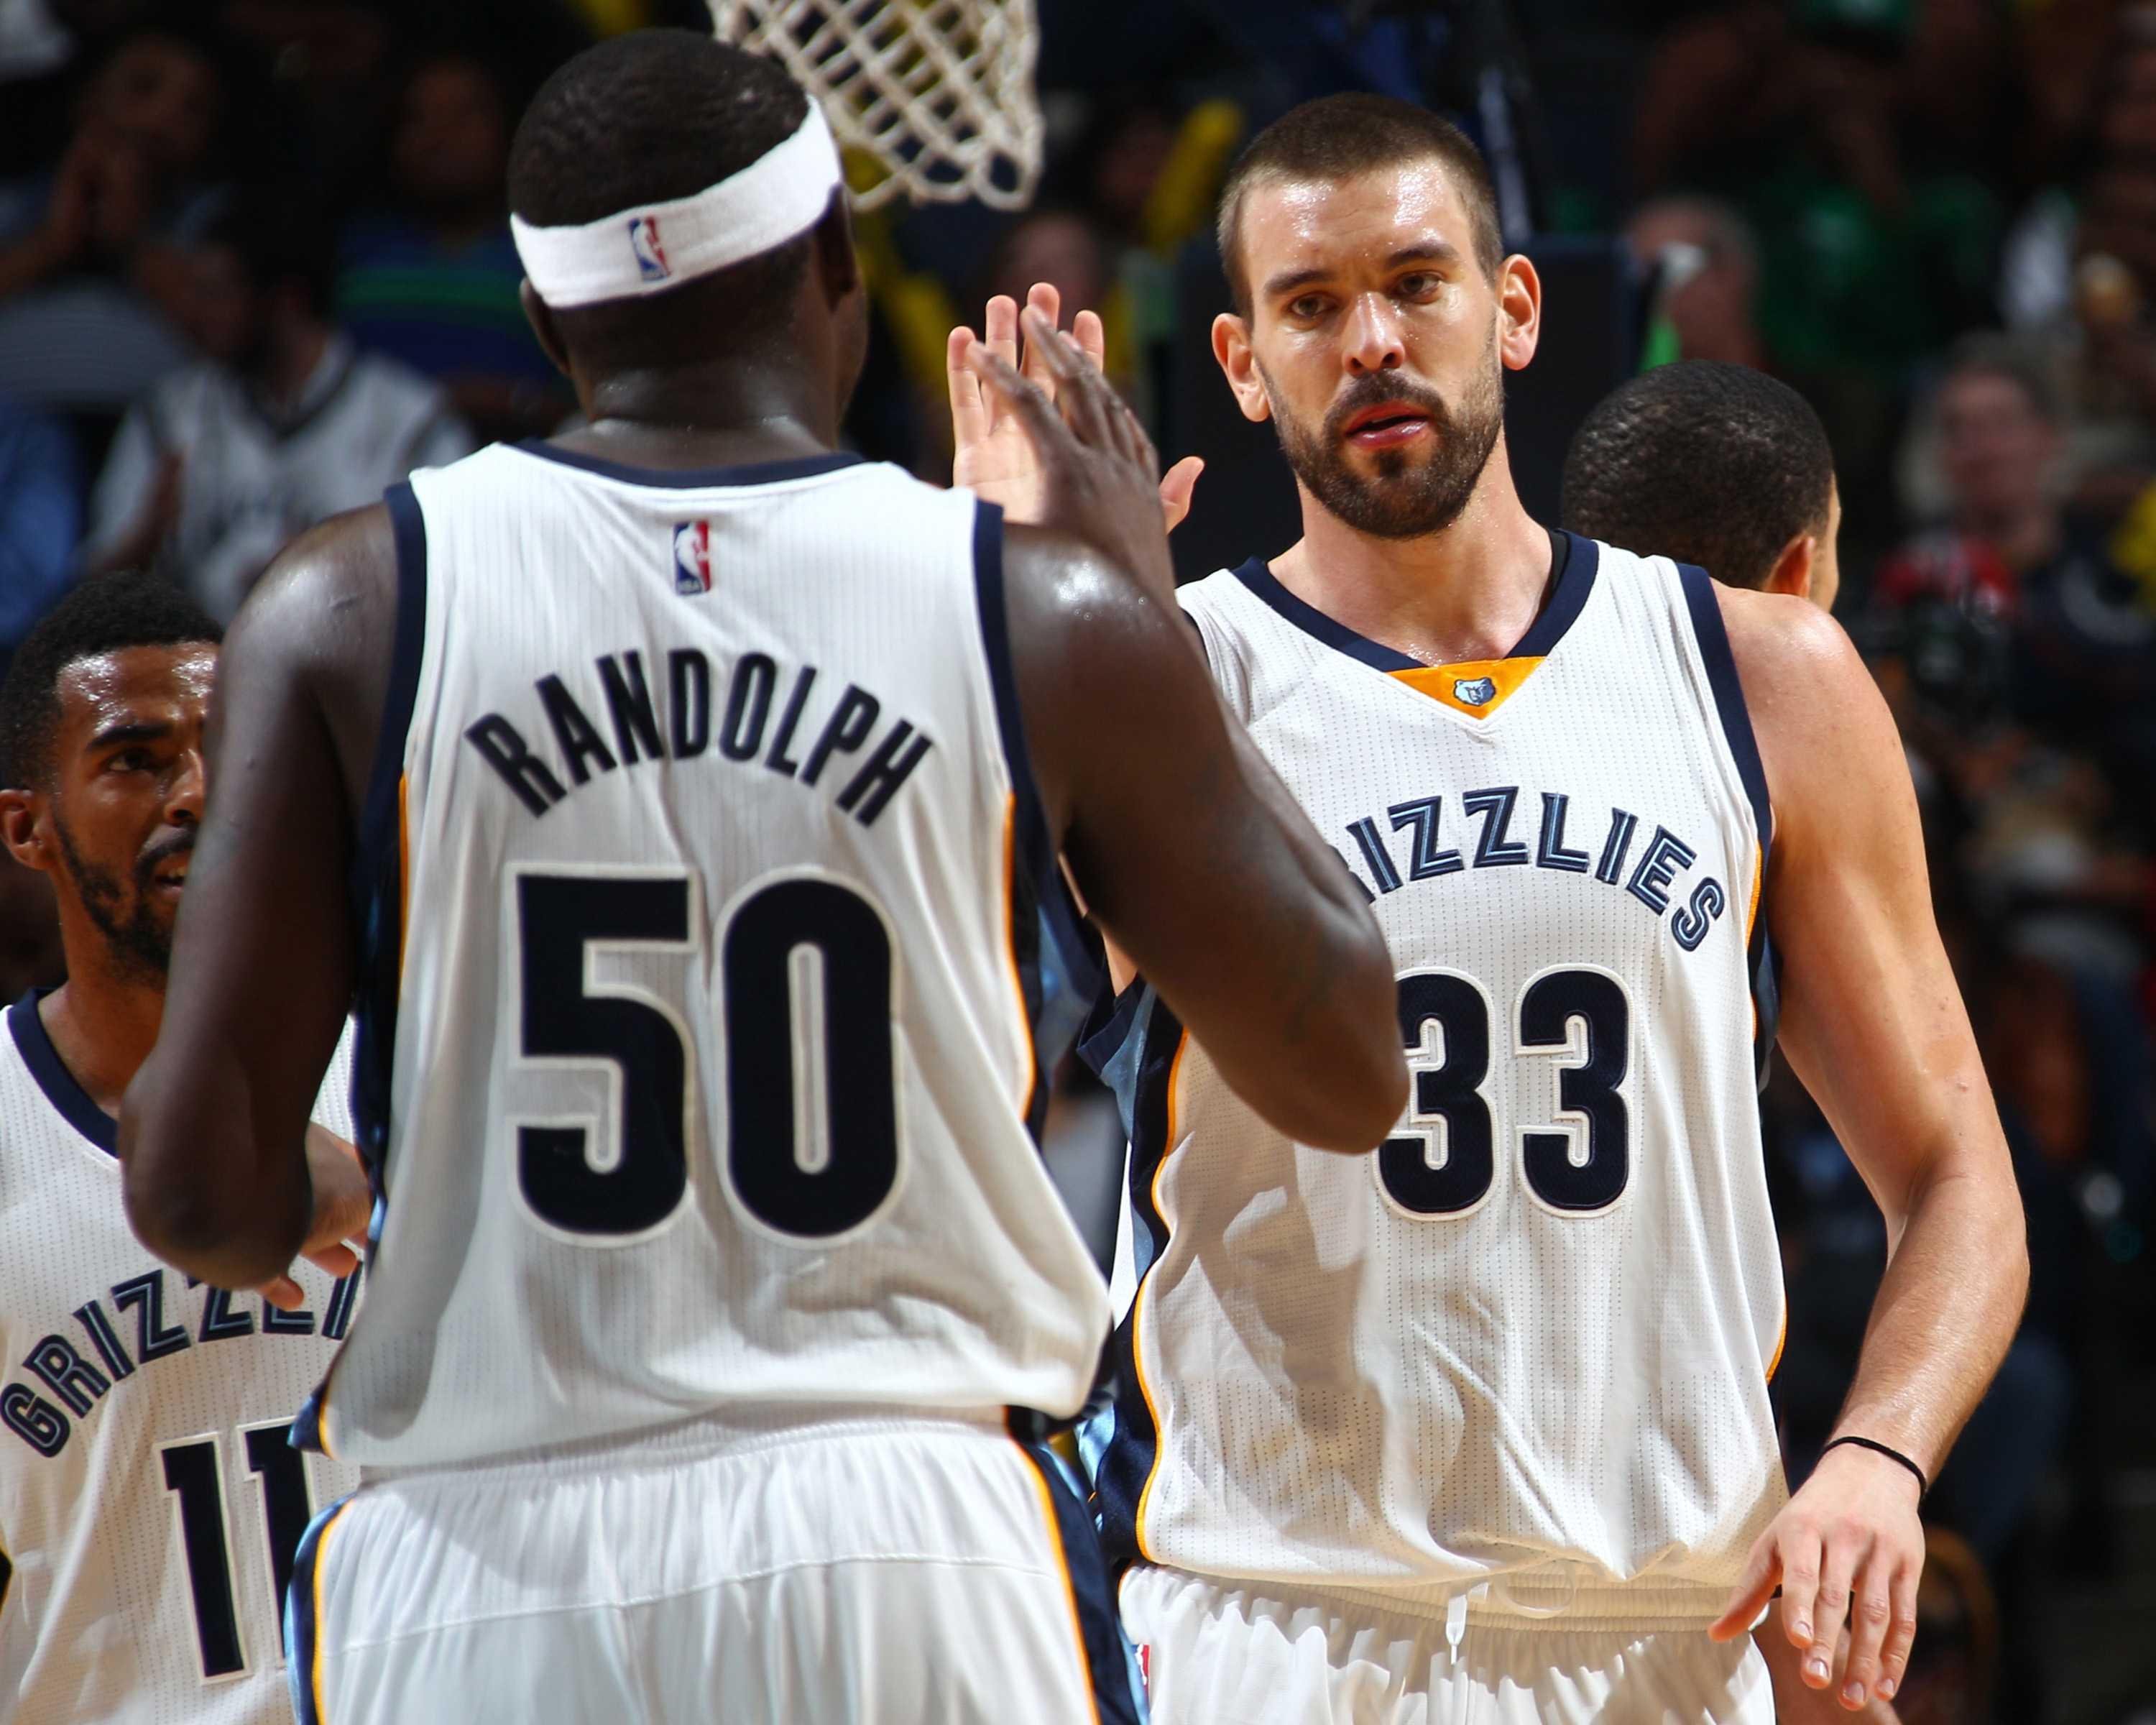 The Memphis Grizzlies relocating to the East makes a lot of sense for the NBA. Photo courtesy of Tribune News Services.